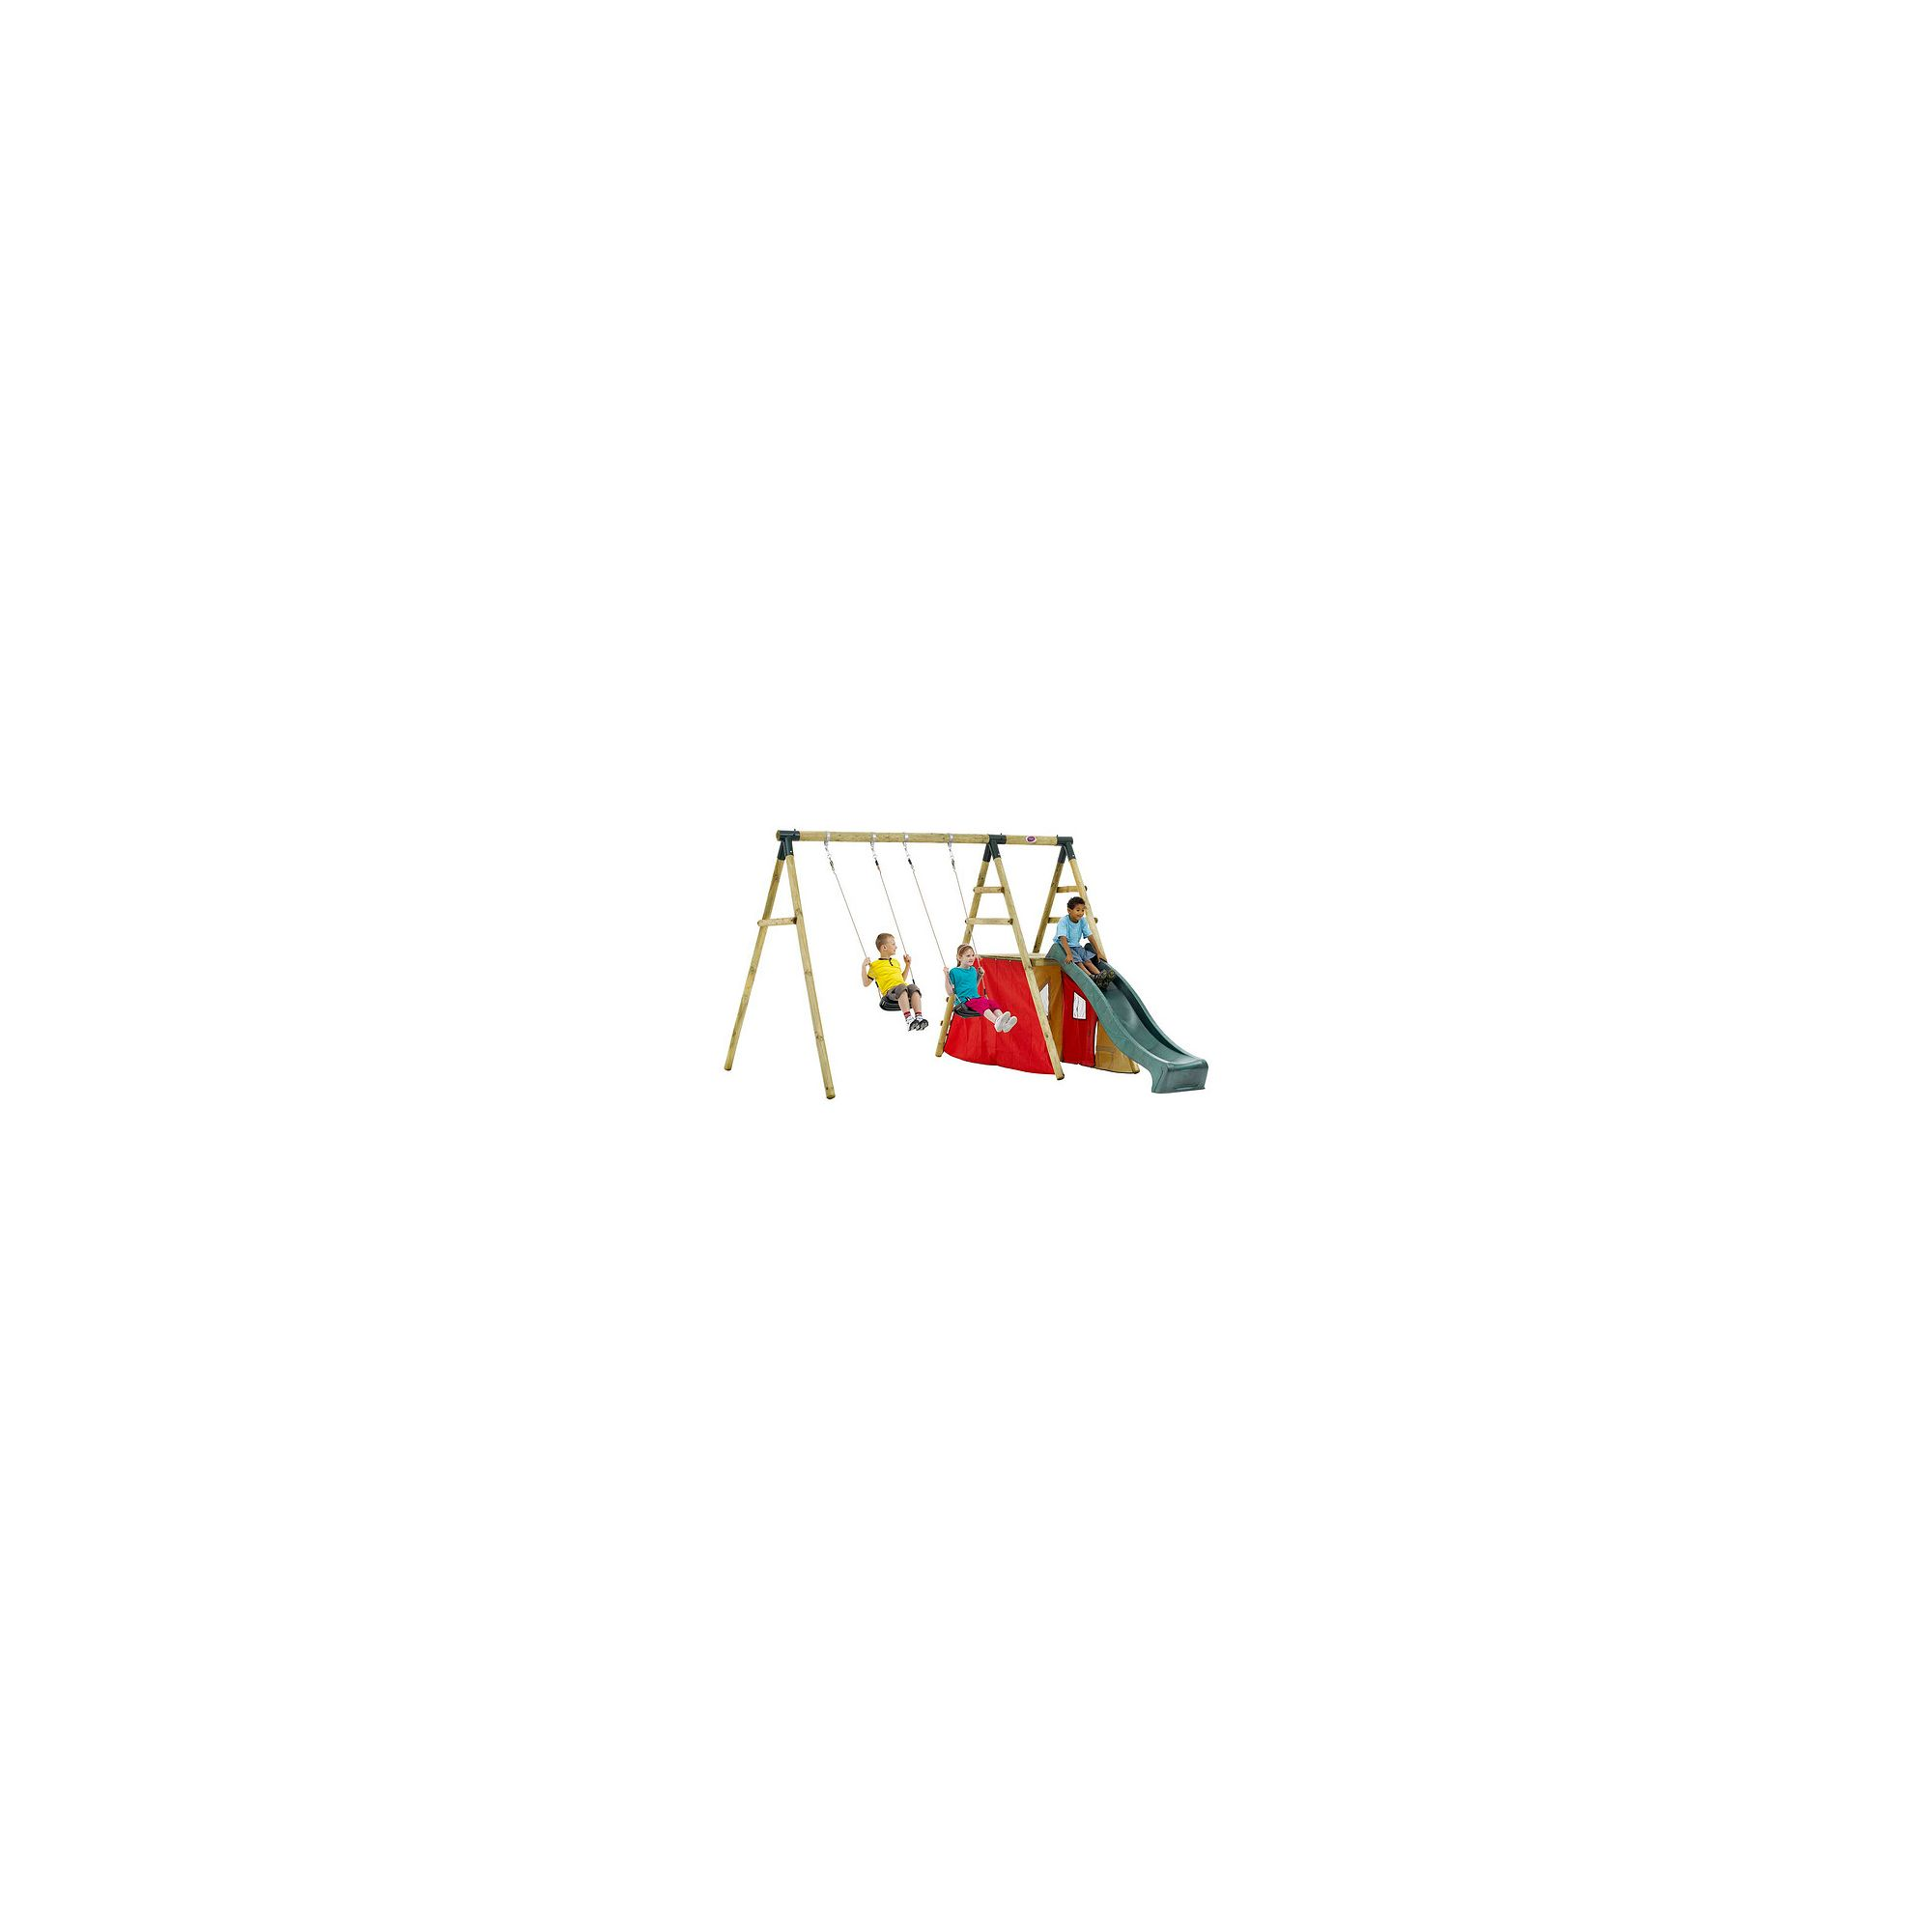 Plum Chacma Wooden Garden Swing Set at Tesco Direct